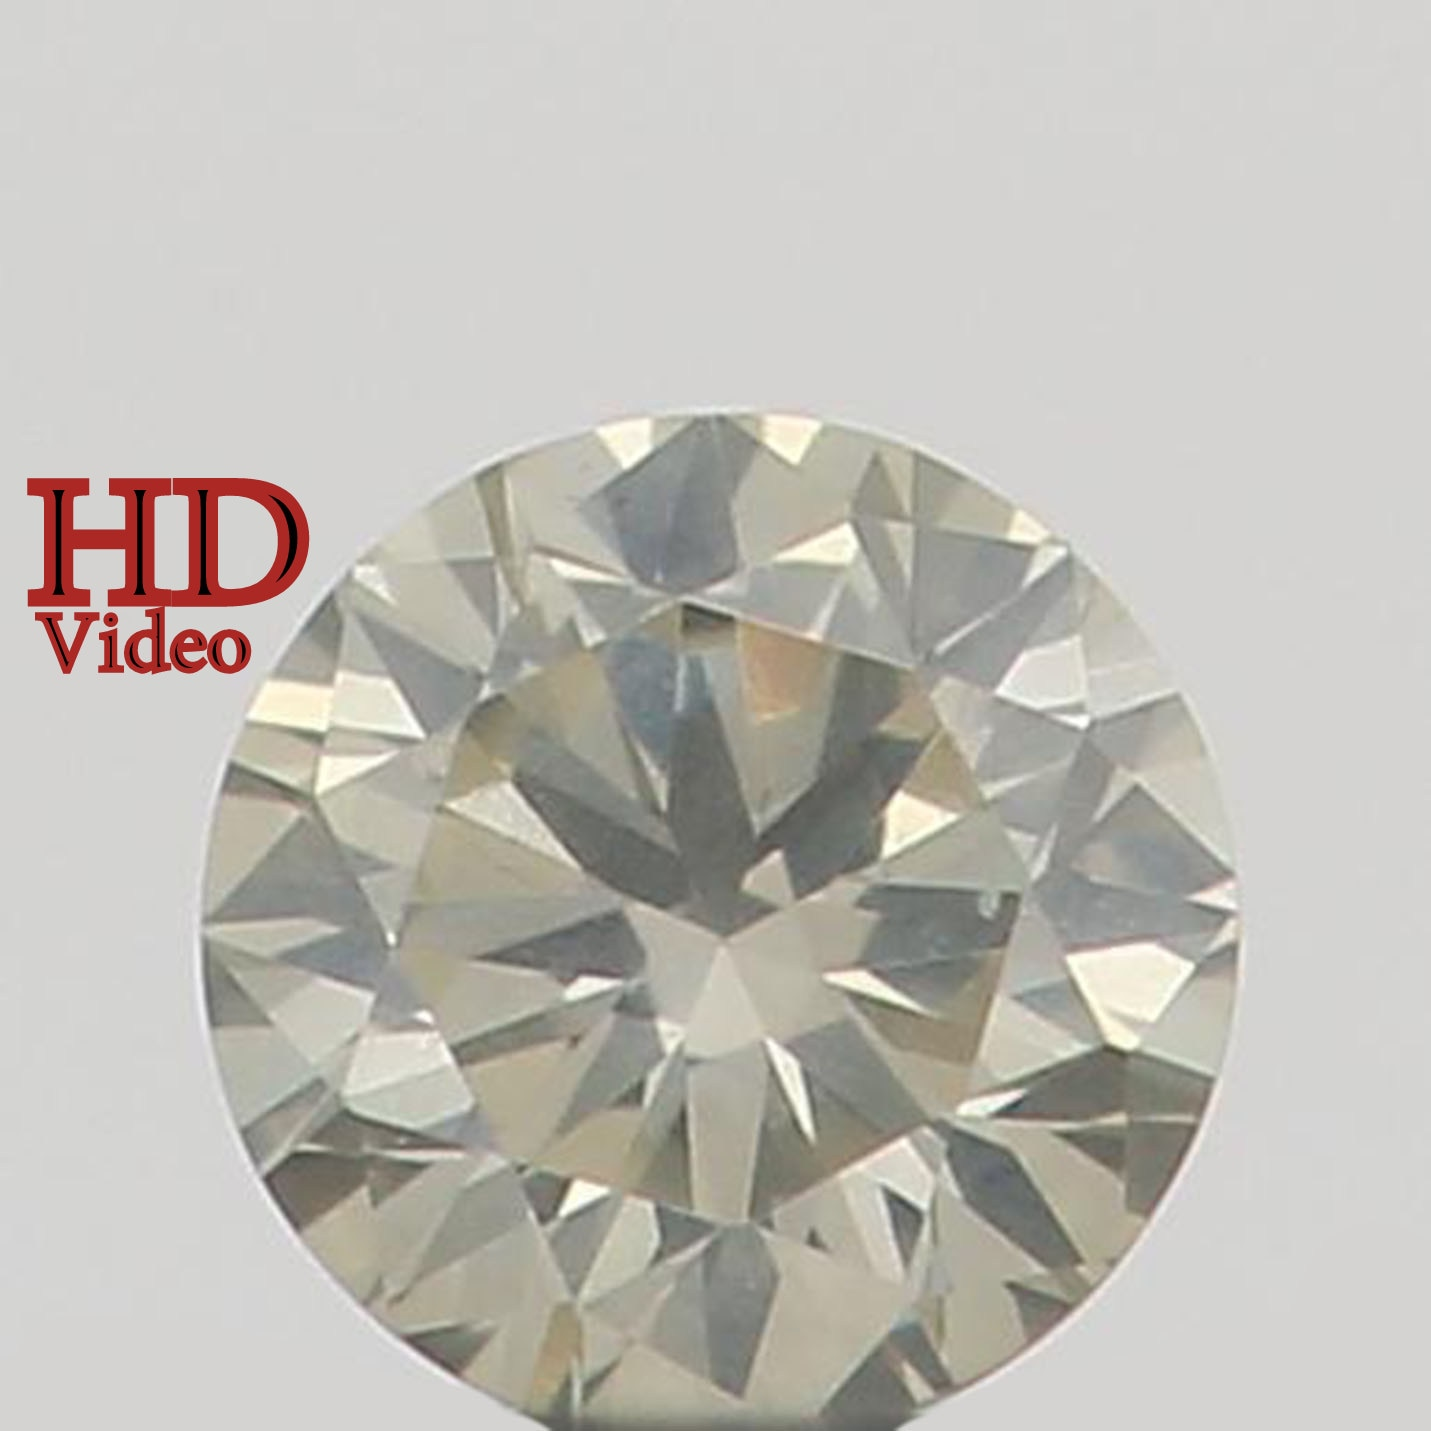 diamond am ws company rosen diamonds jewelry good sydney philadelphia